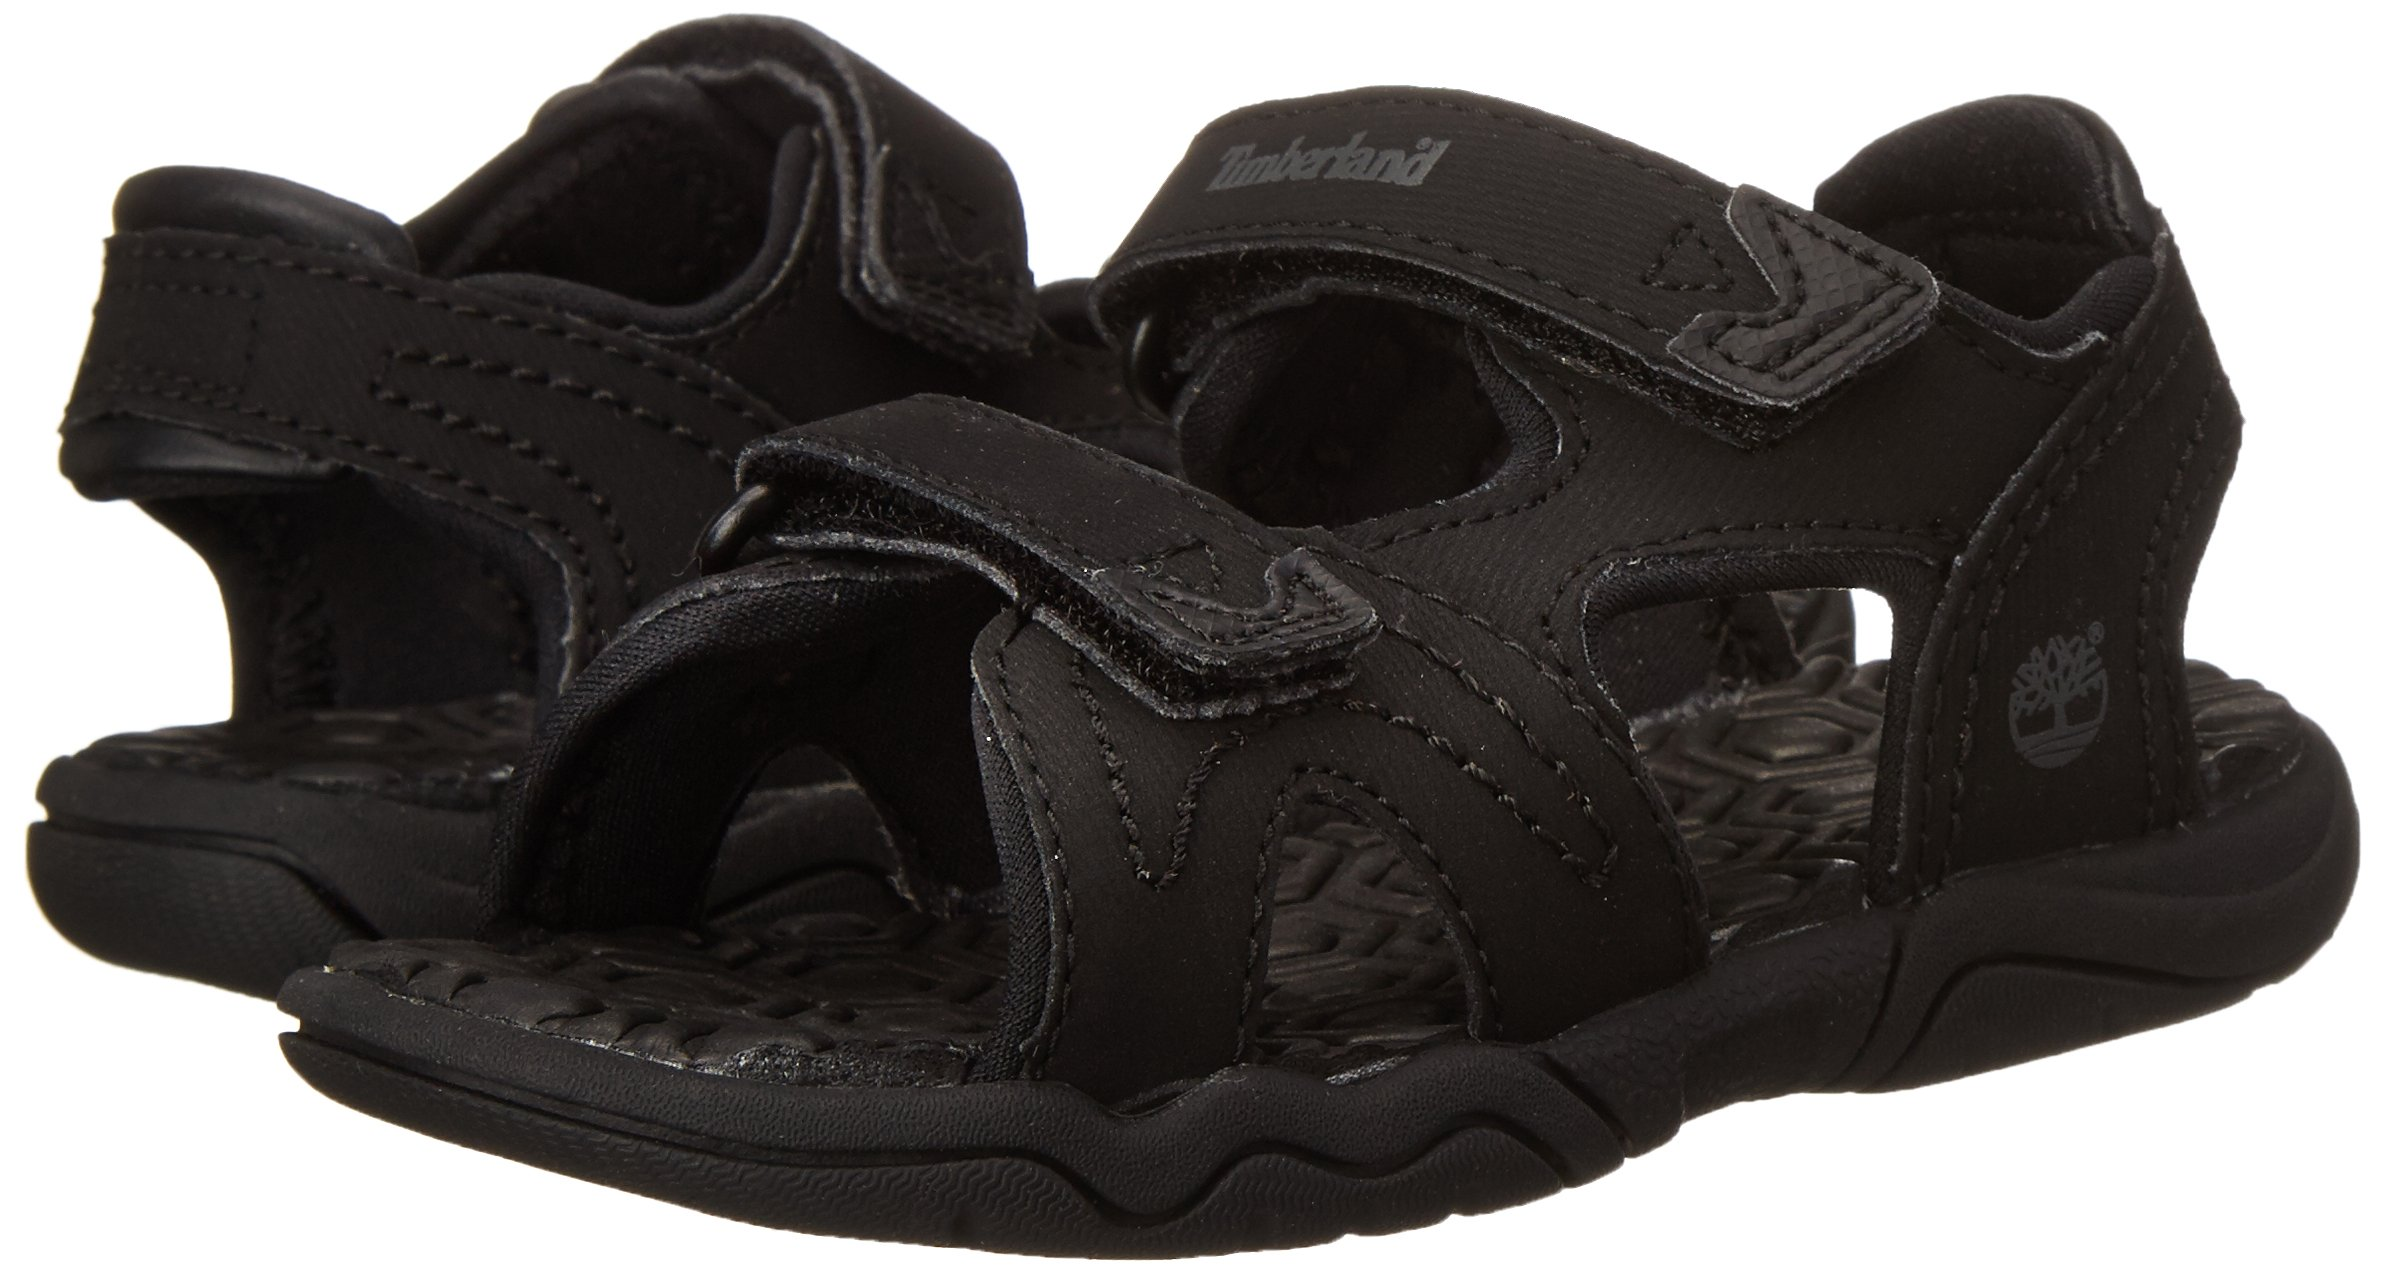 Timberland Adventure Seeker Two-Strap Sandal (Toddler/Little Kid),Blackout,9 M US Toddler by Timberland (Image #6)